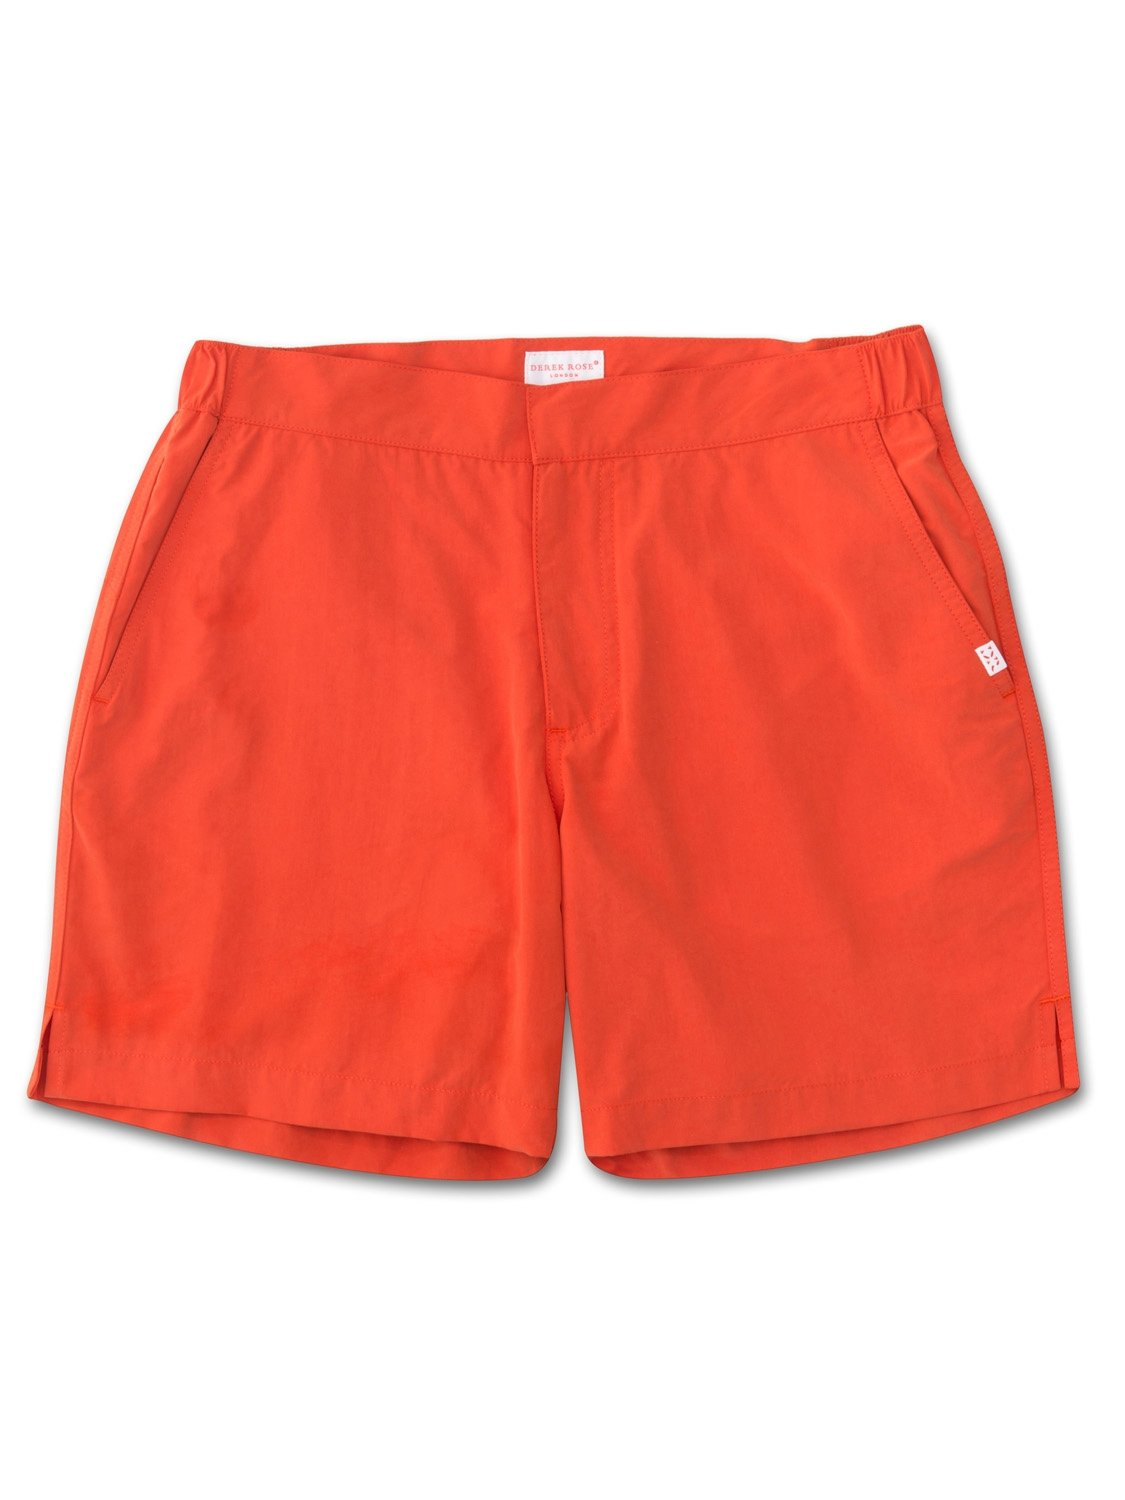 Men's Modern Fit Swim Shorts Aruba Orange